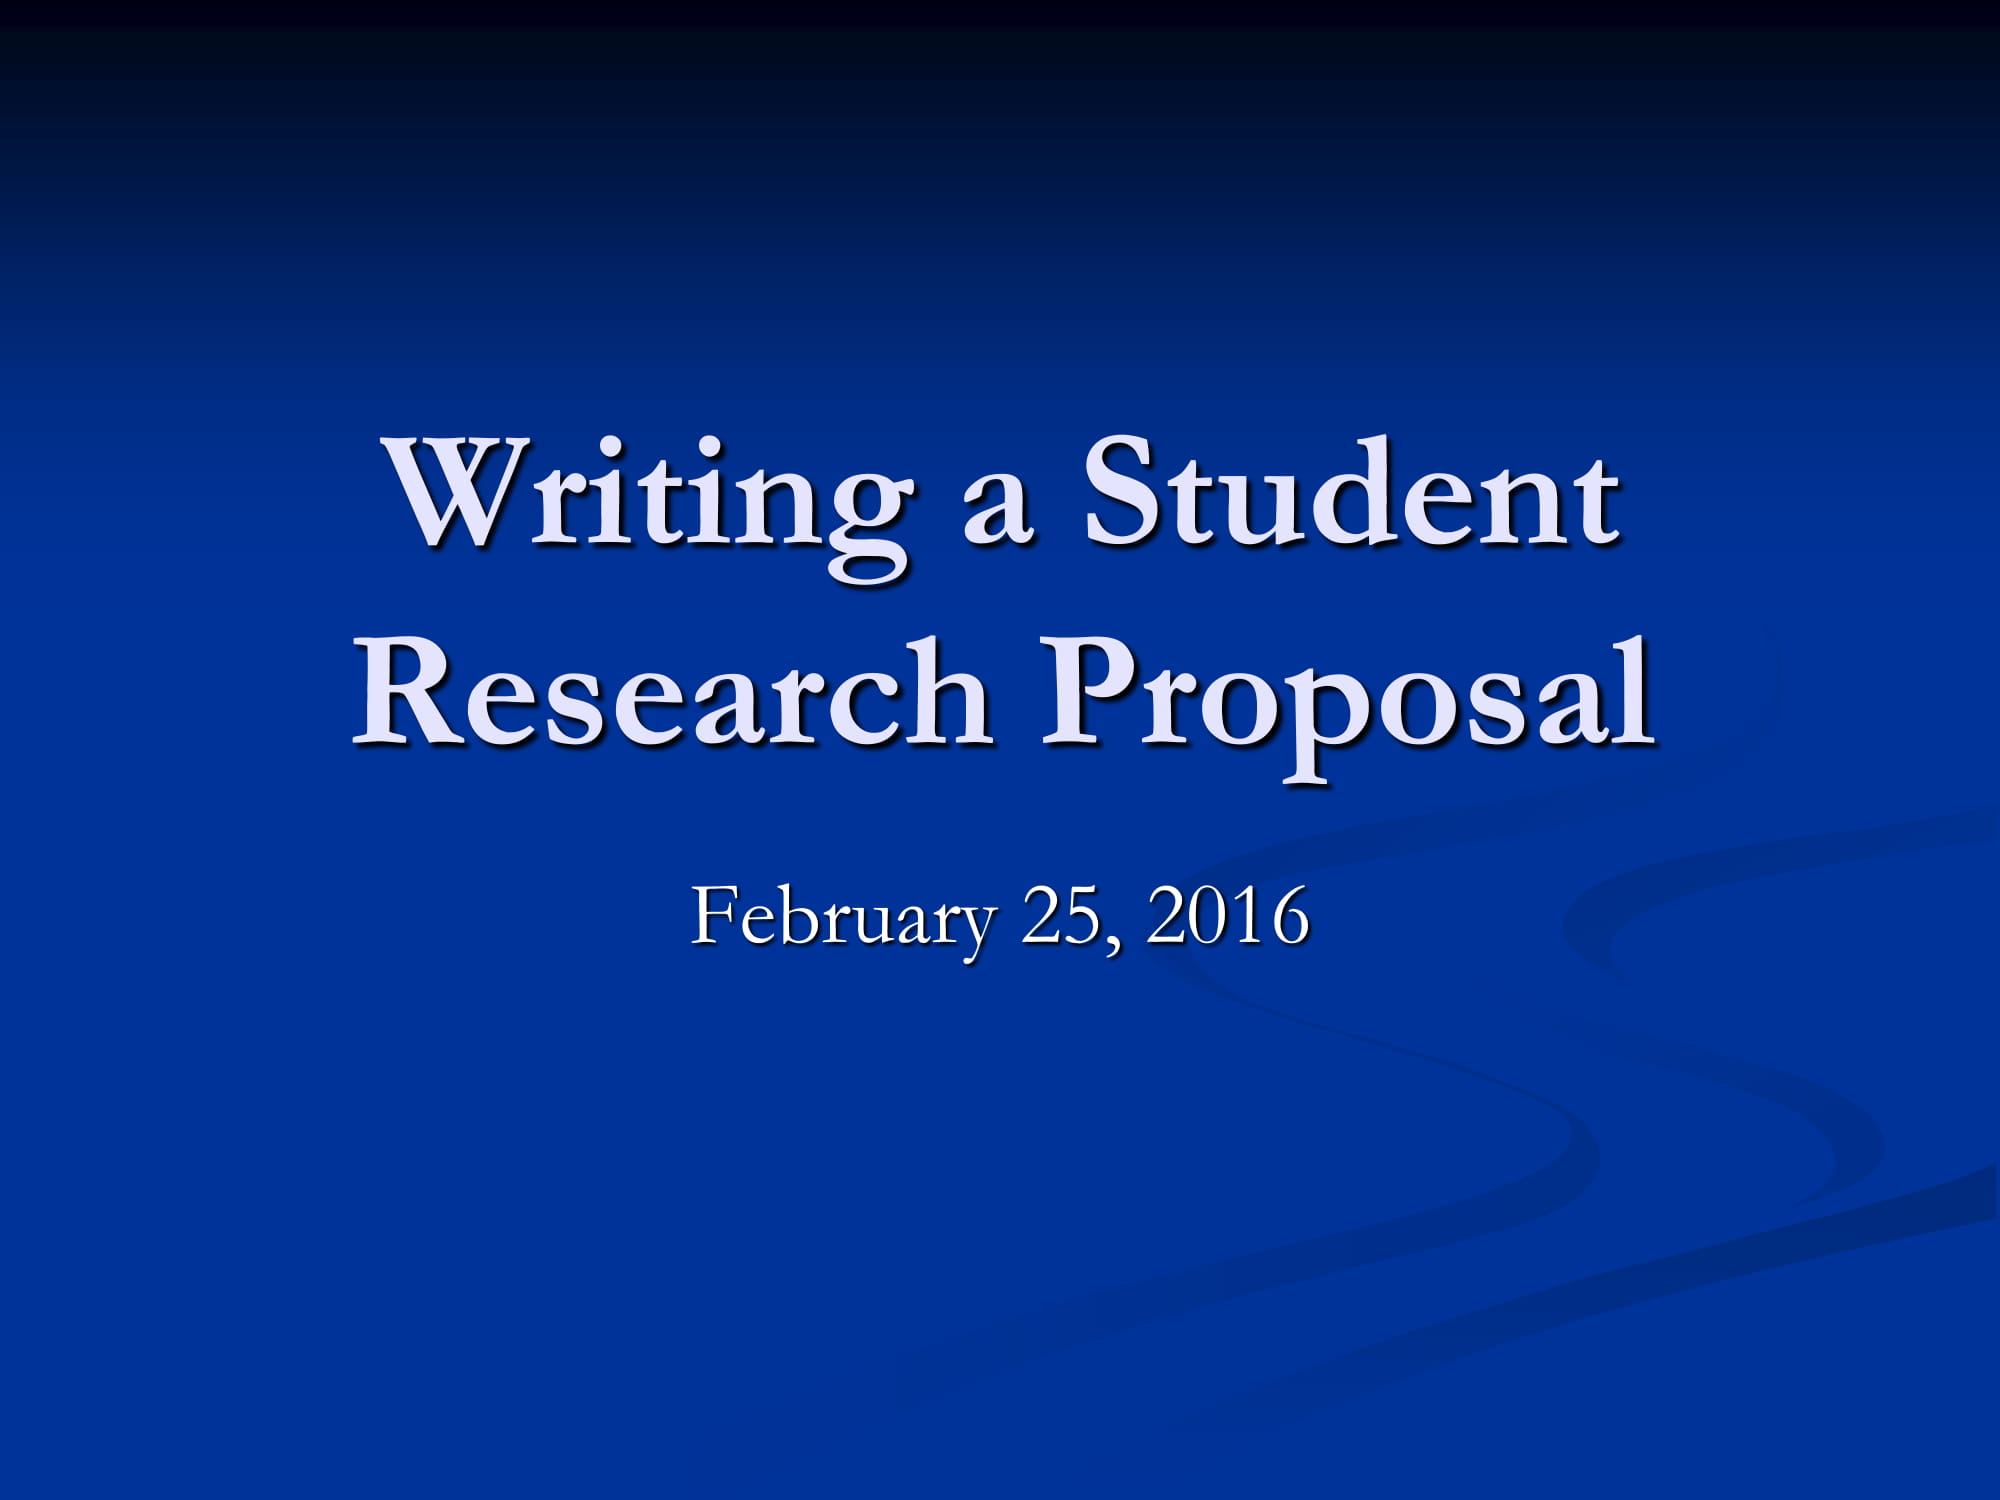 writing a student research proposal example 01